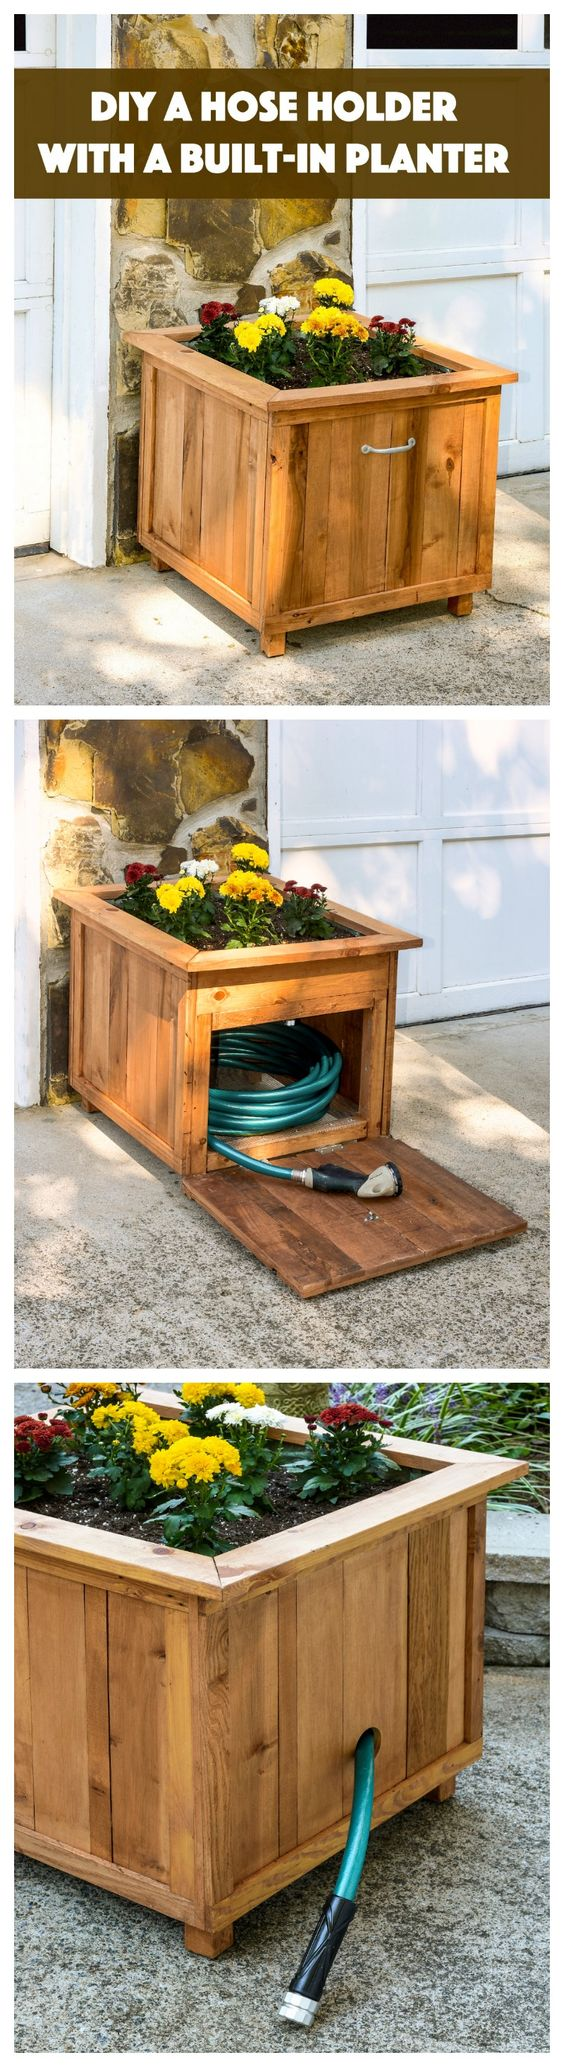 DIY Garden Hose Holder With Planter Using Recycled Pallet Wood.